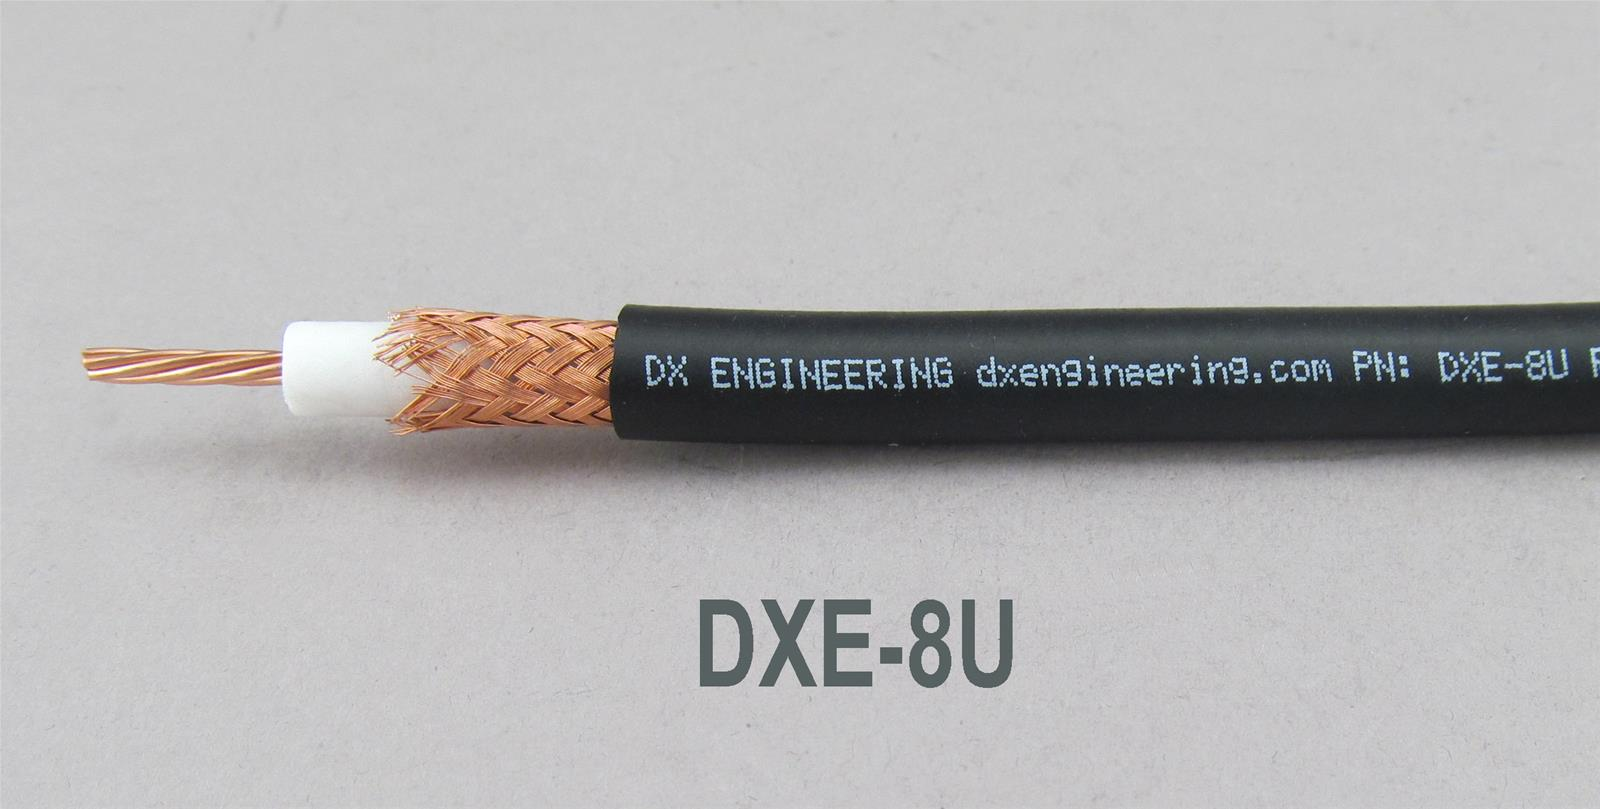 Coaxial Cable Dx Engineering Rg 8 U 50 Ohm Bulk Coaxial Cable Dxe 8u